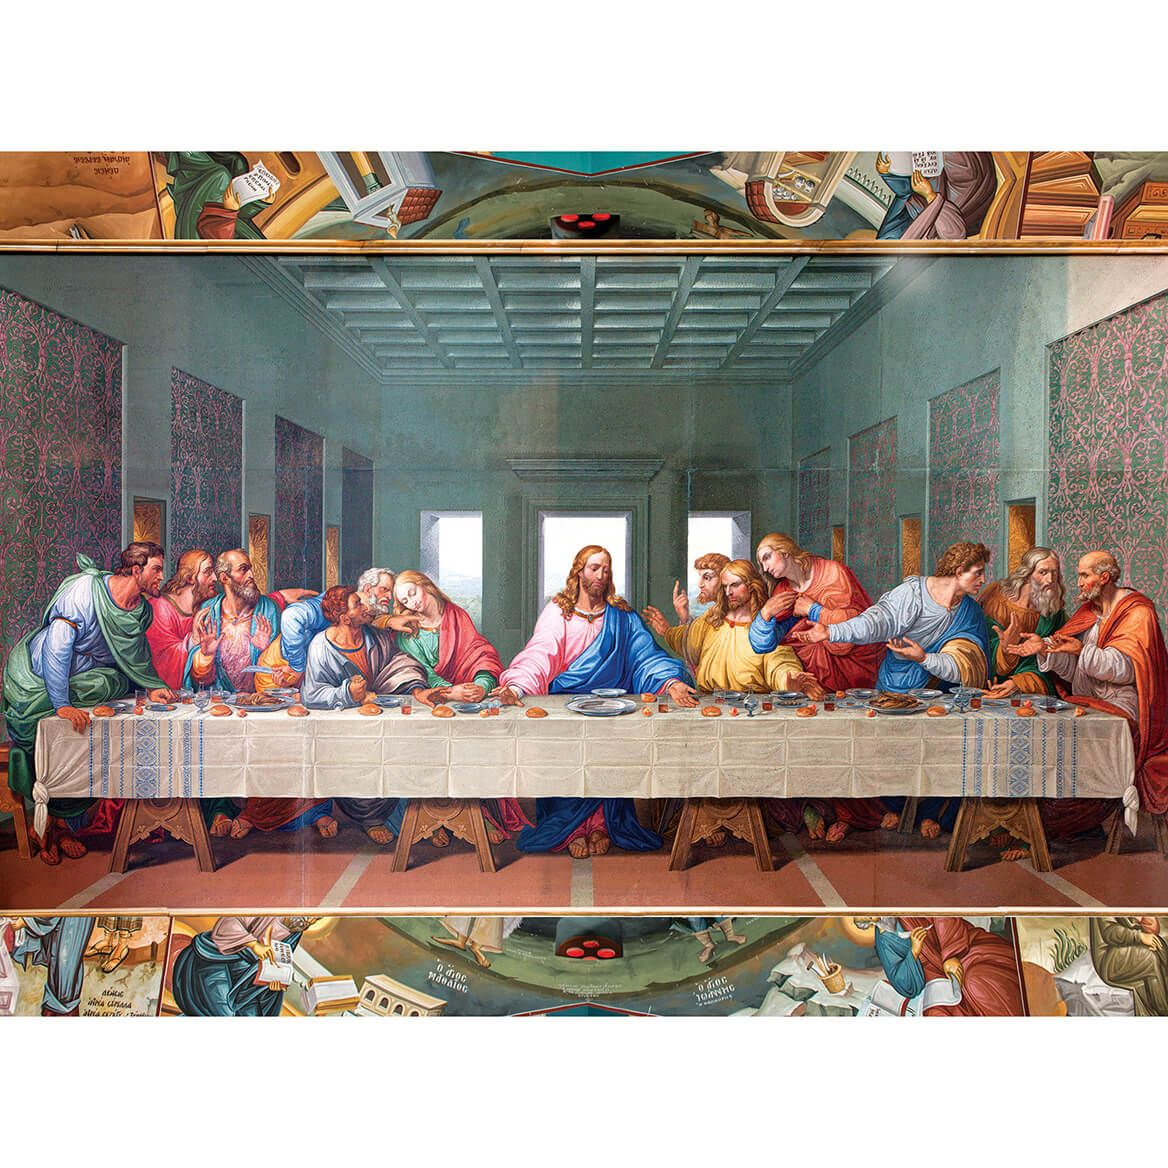 Inspirations The Last Supper 1000 Piece Puzzle-372196